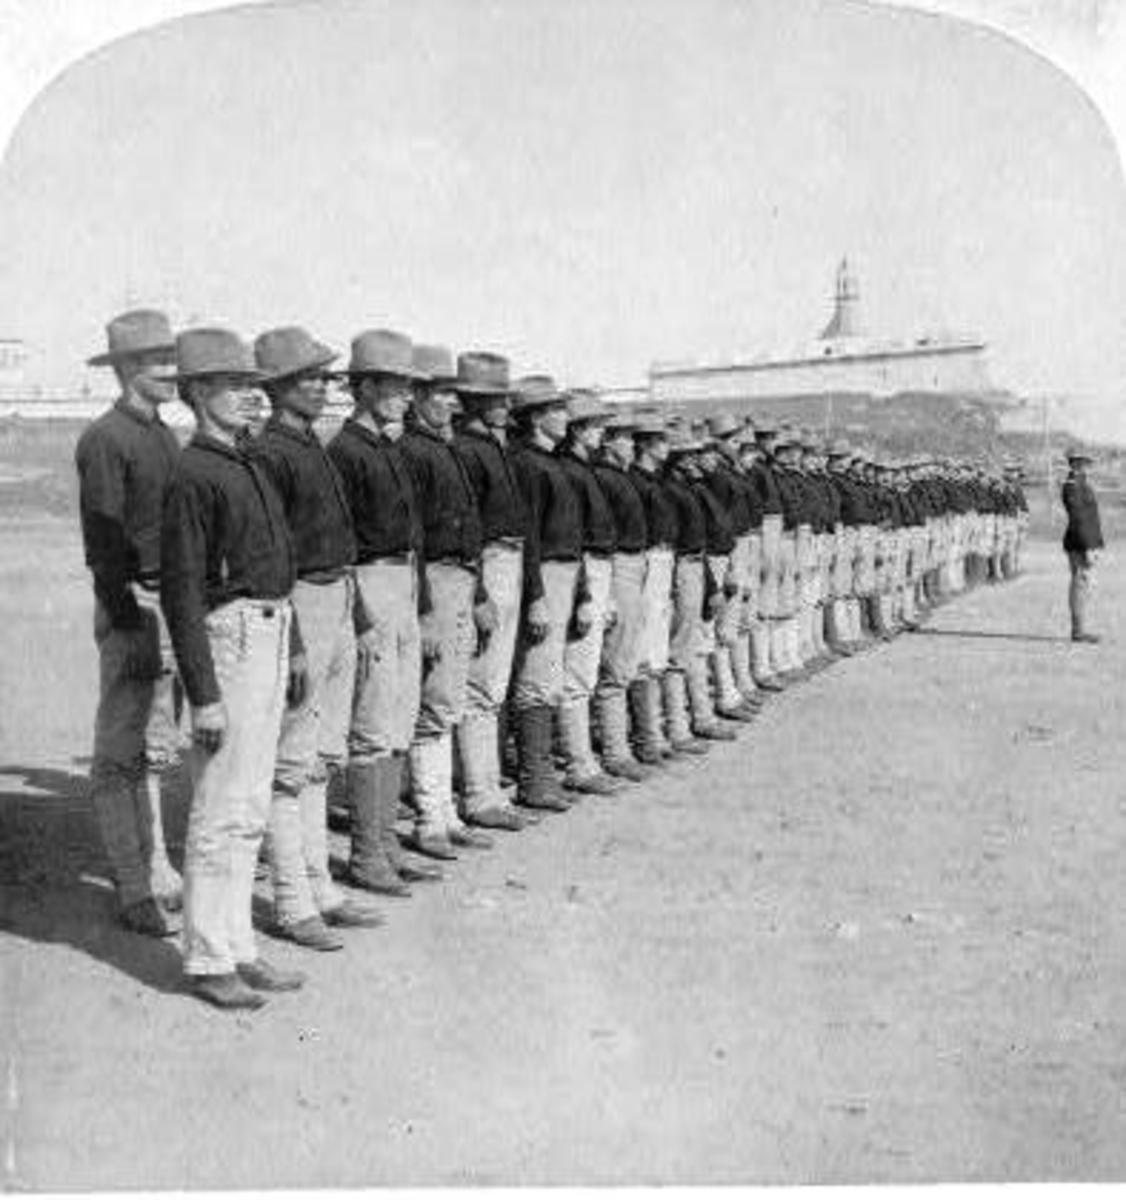 Early picture of the first Puerto Rican soldiers to serve in the US ARMY in 1899.